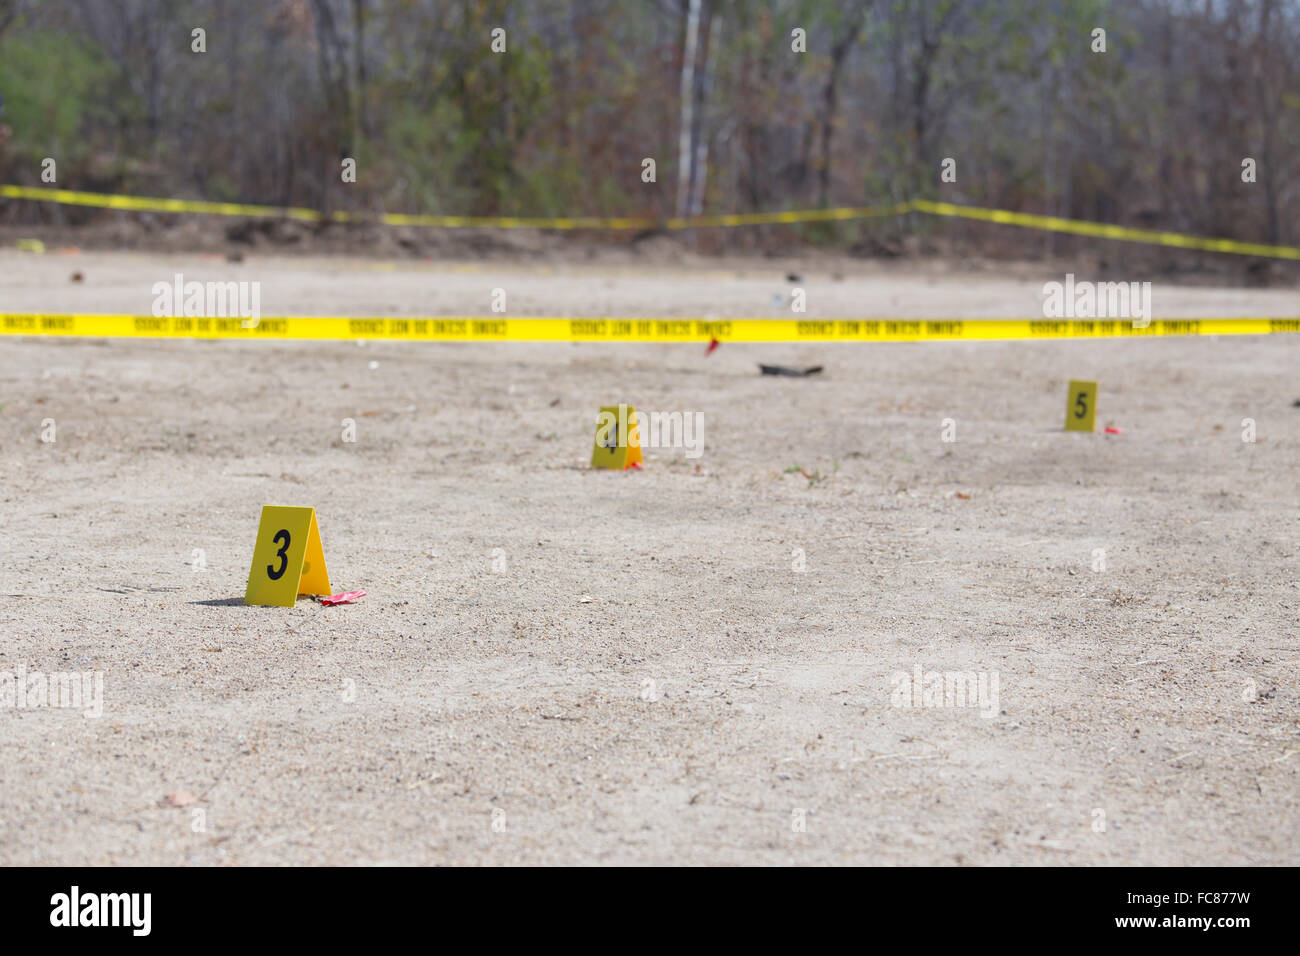 yellow evidence number tag in car bomb crime scene - Stock Image